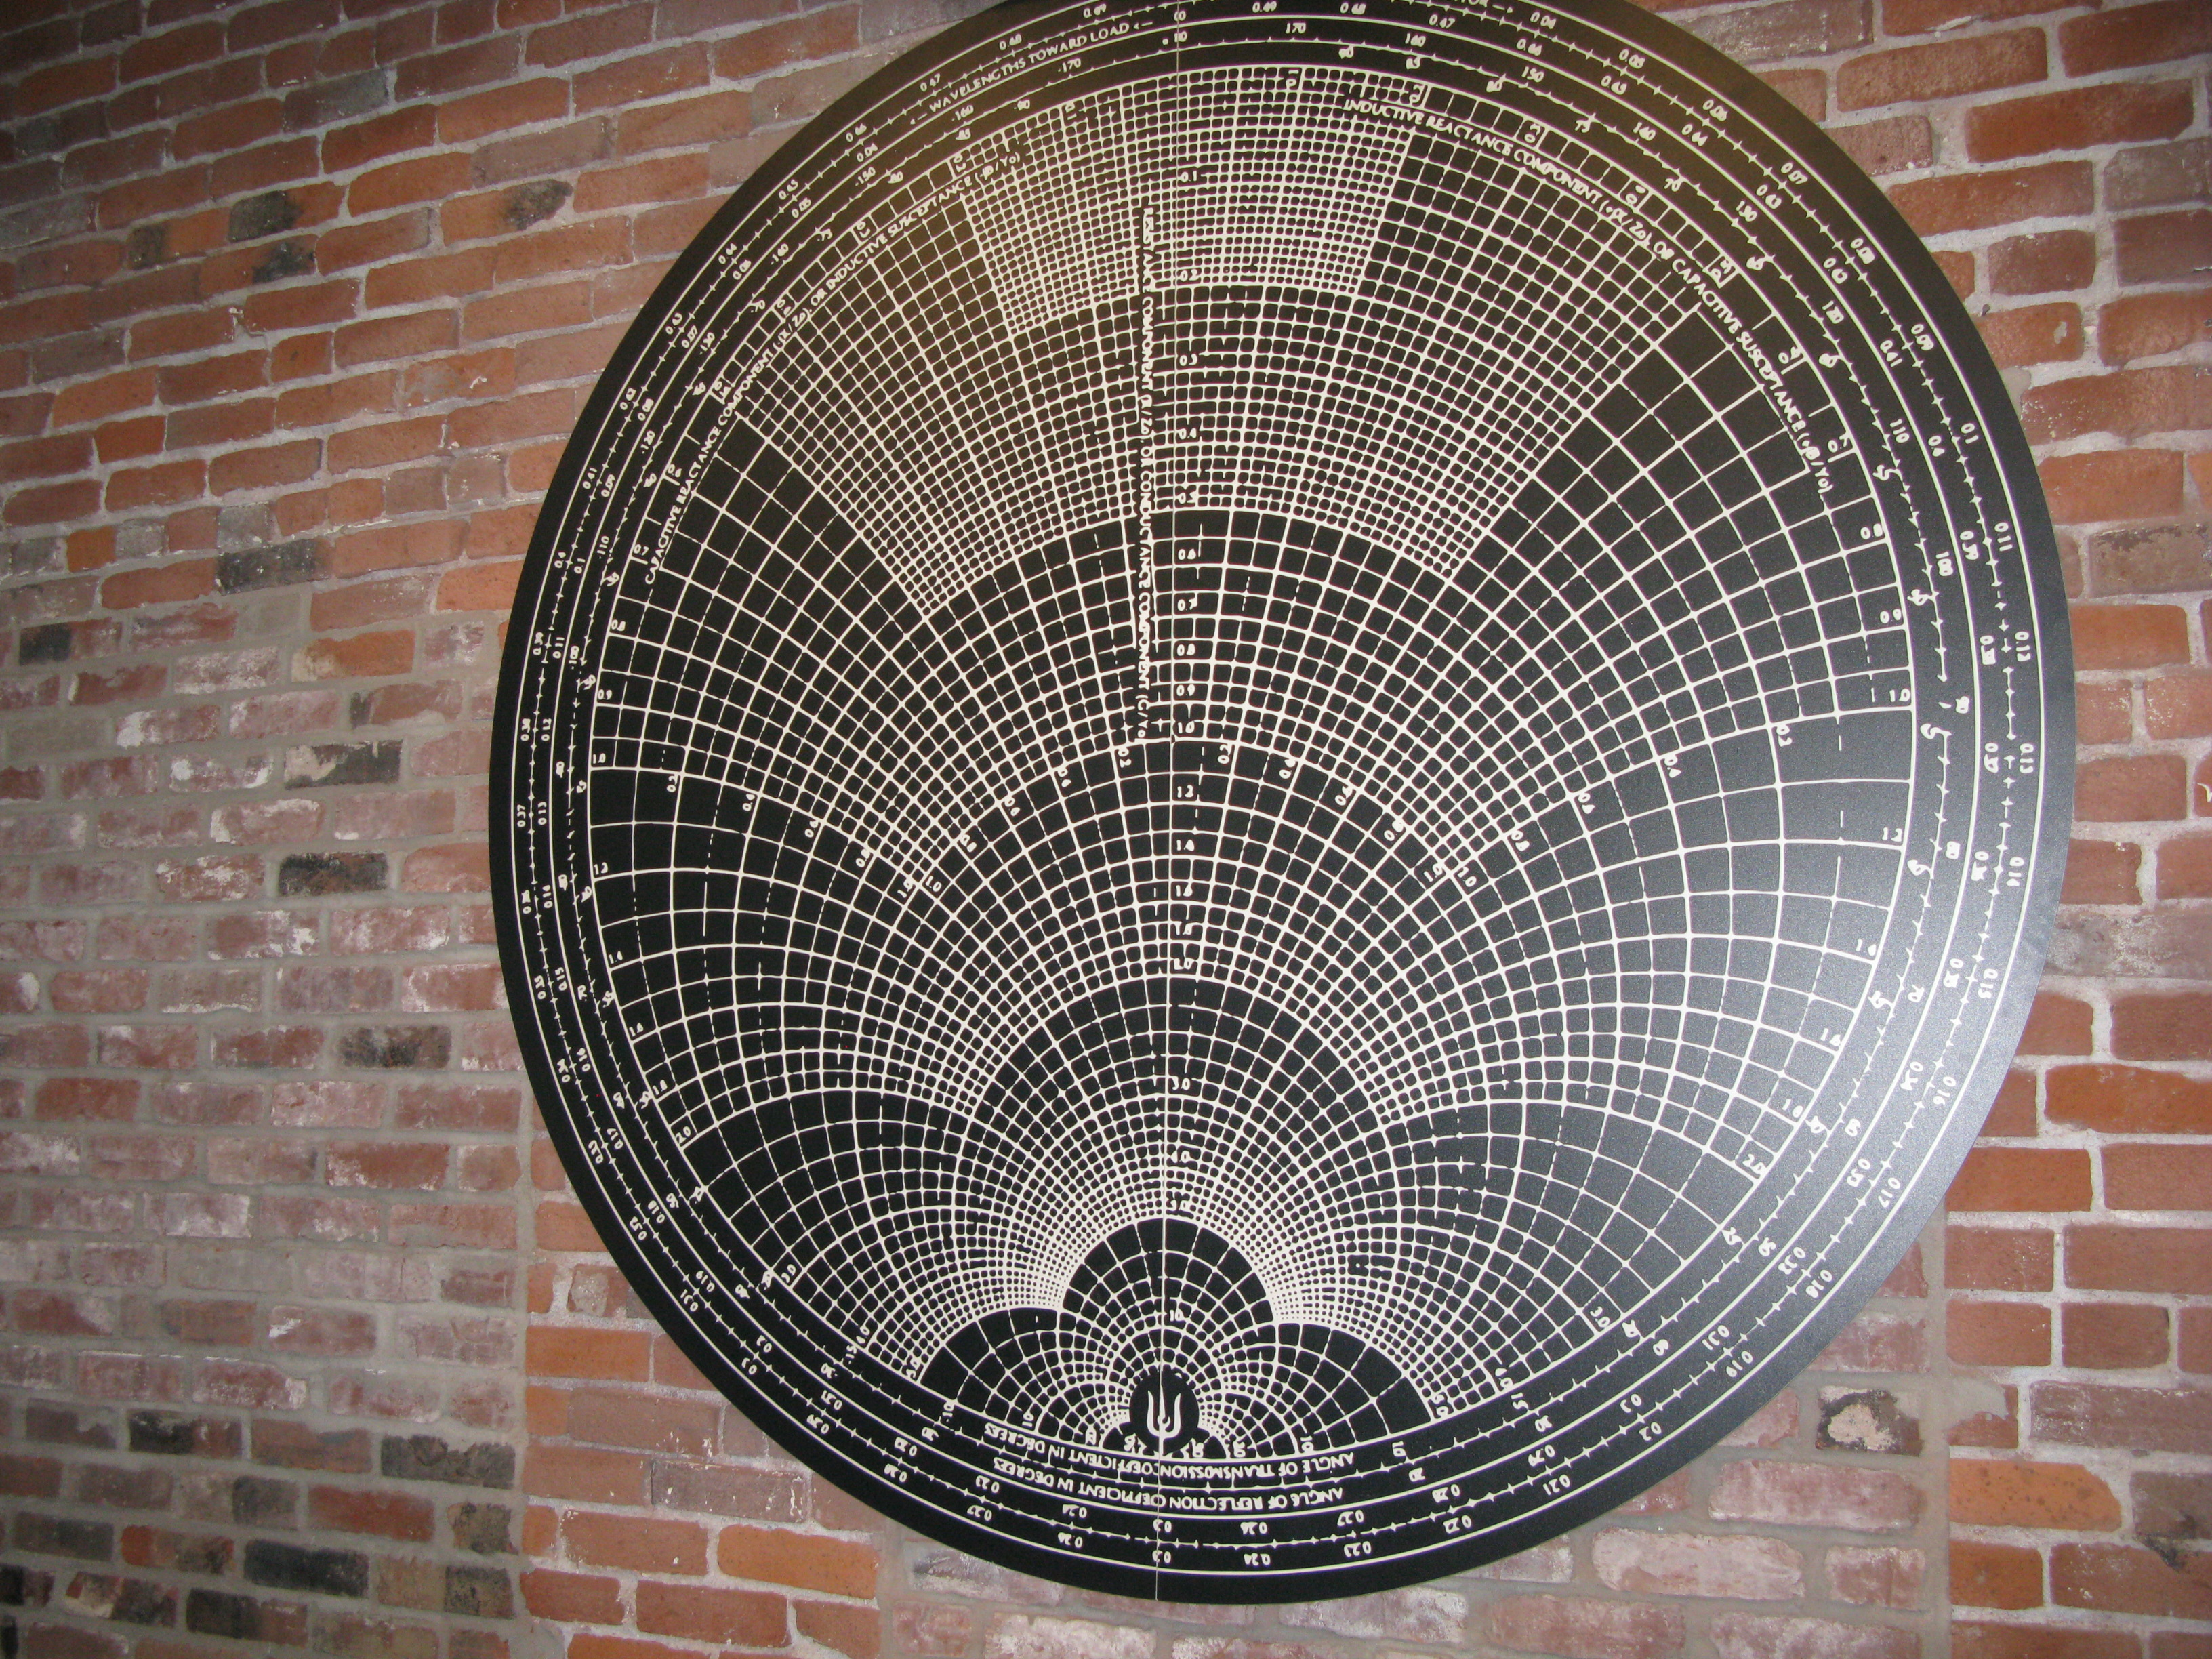 Portland graphic artist Orion Landau is the man behind the fine art on the brick walls, geometric meditations on sacred geometry. This, the biggest, is based, I believe, on the logarithmic grid of an oscilloscope screen...cool stuff indeed. (FoystonFoto)